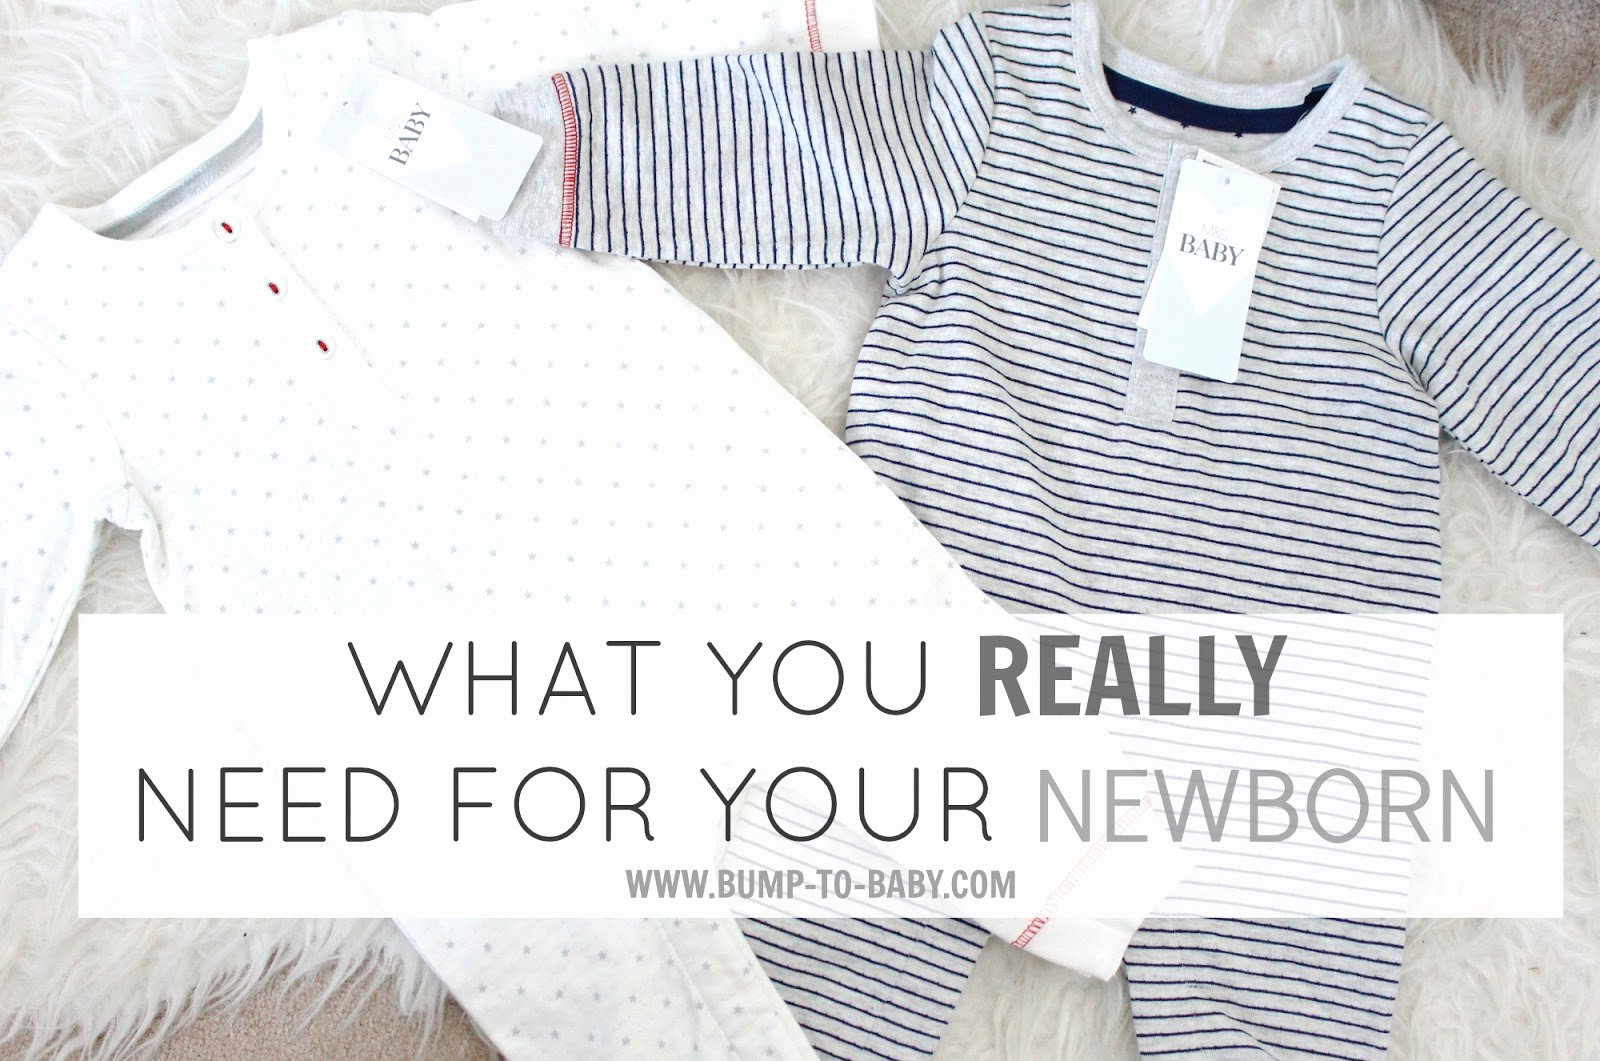 Newborn Essentials Checklist Inspirational Preparing for Baby What You Really Need for Your